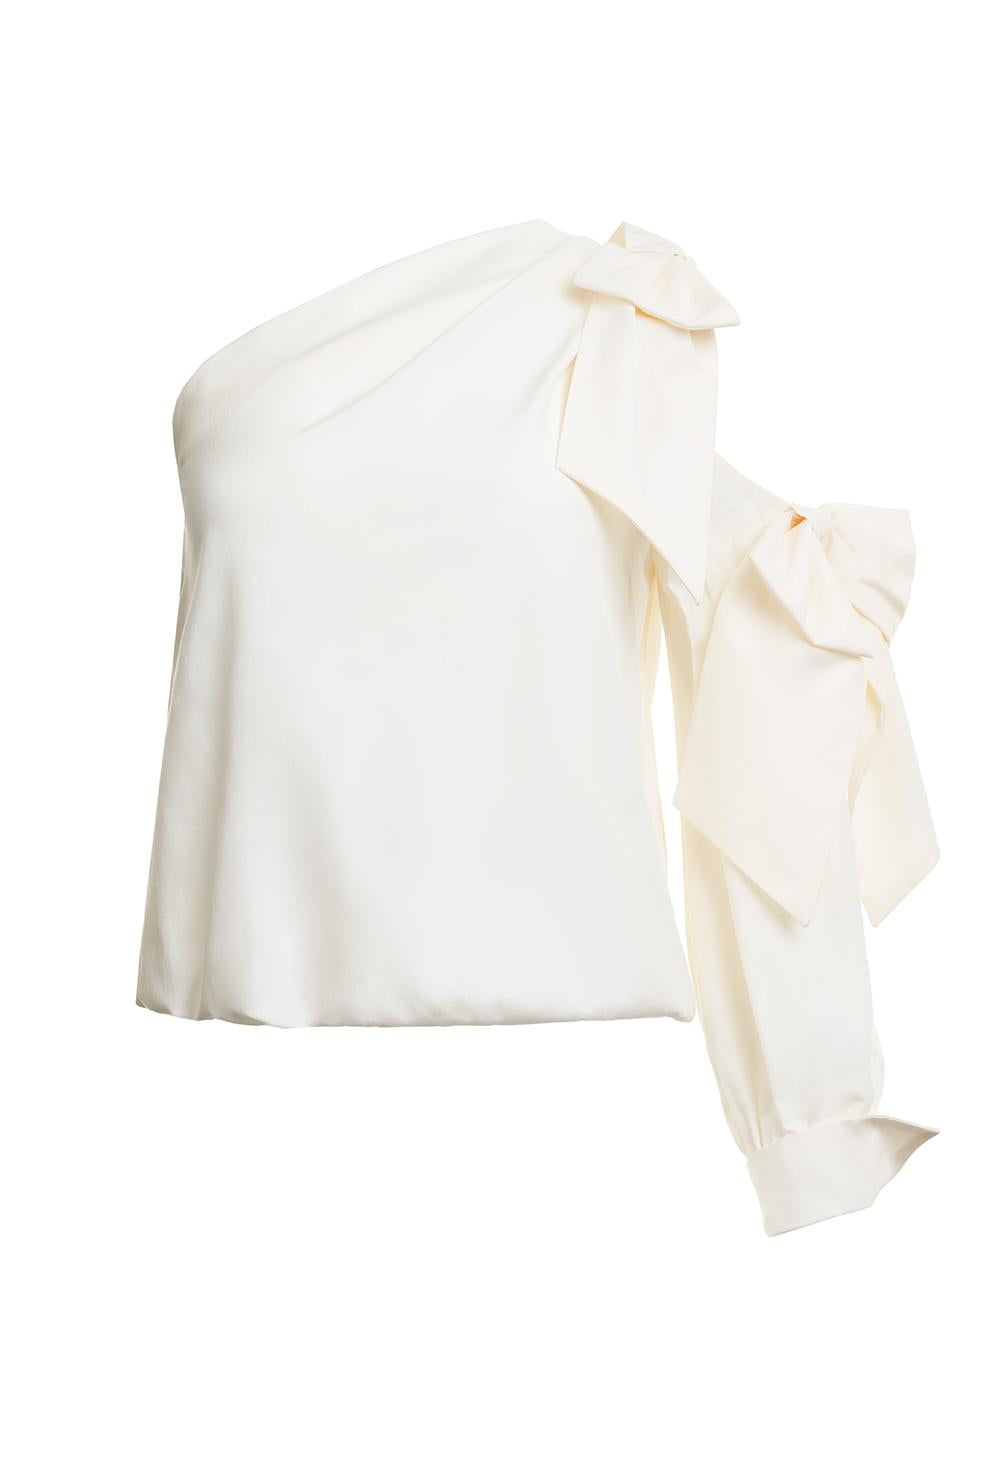 Bowe White One Sleeve Top